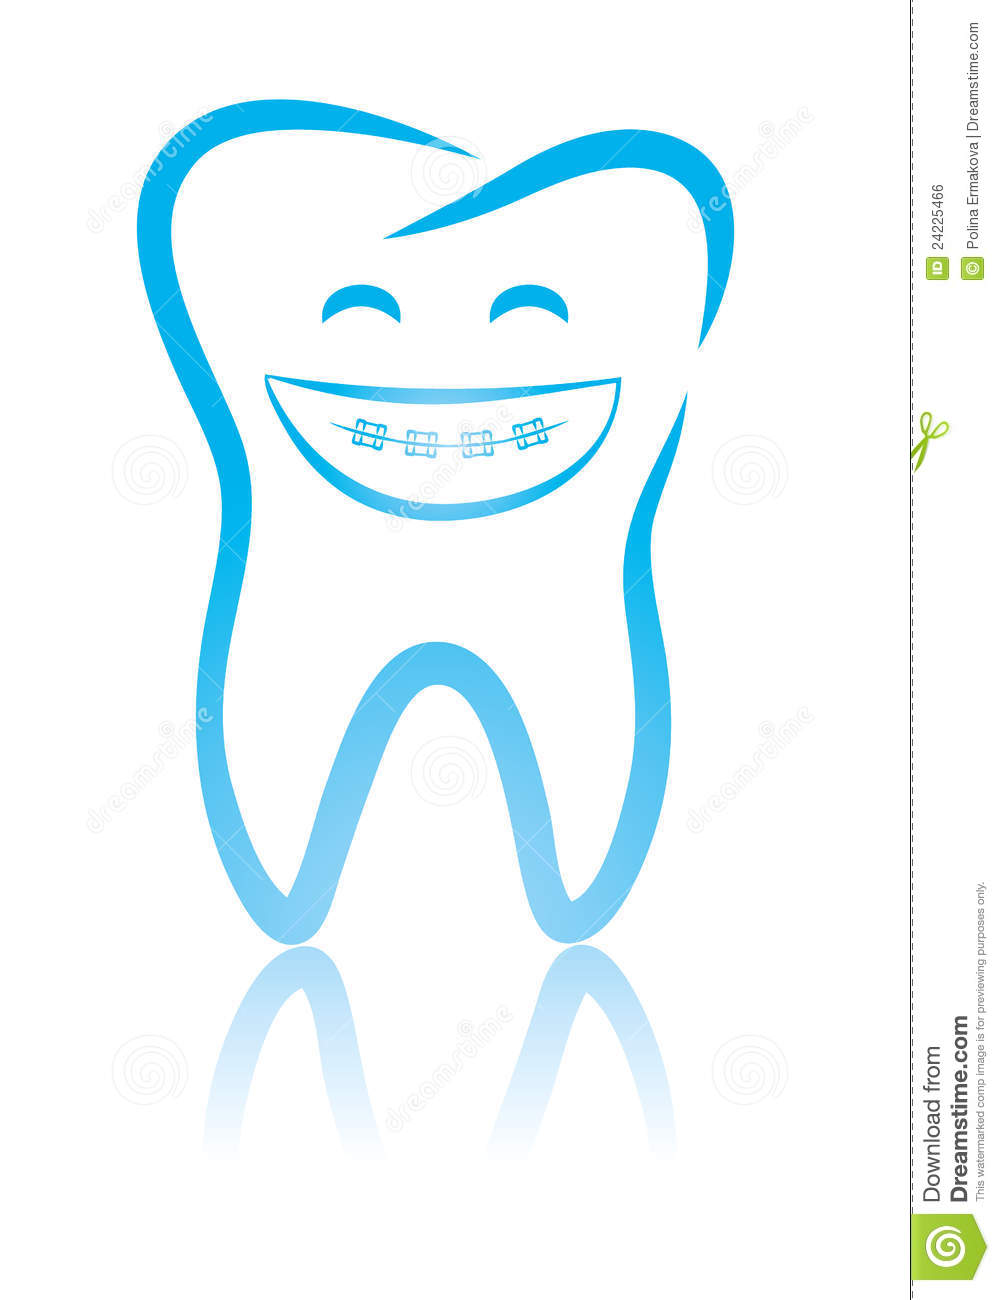 animated-birthday-dental-cliparts-free-download-smiling-dental-tooth-czMkF3-clipart.jpg